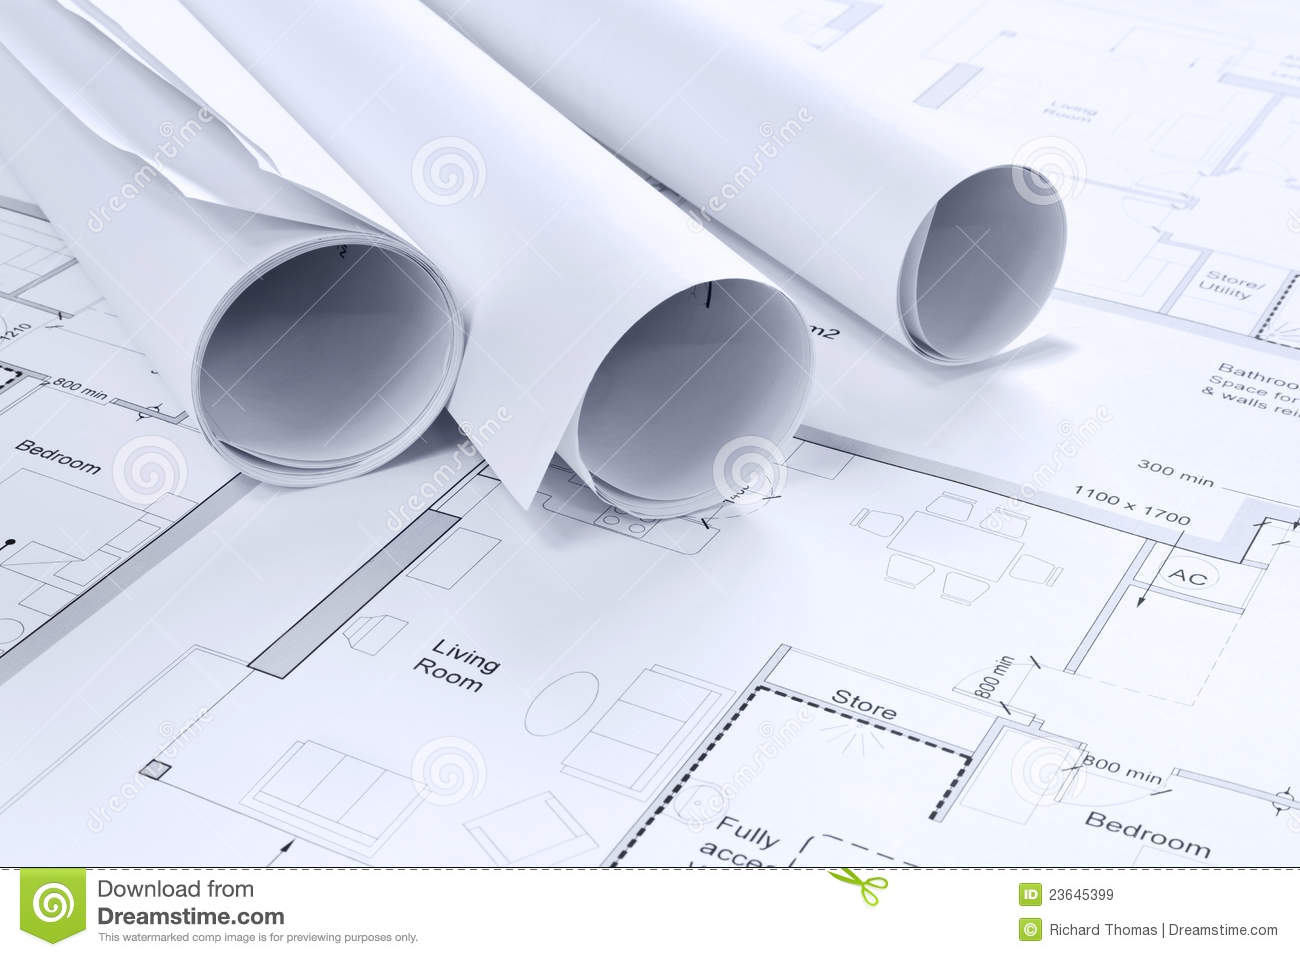 Architectural drawings background stock image image of for Online architecture drawing